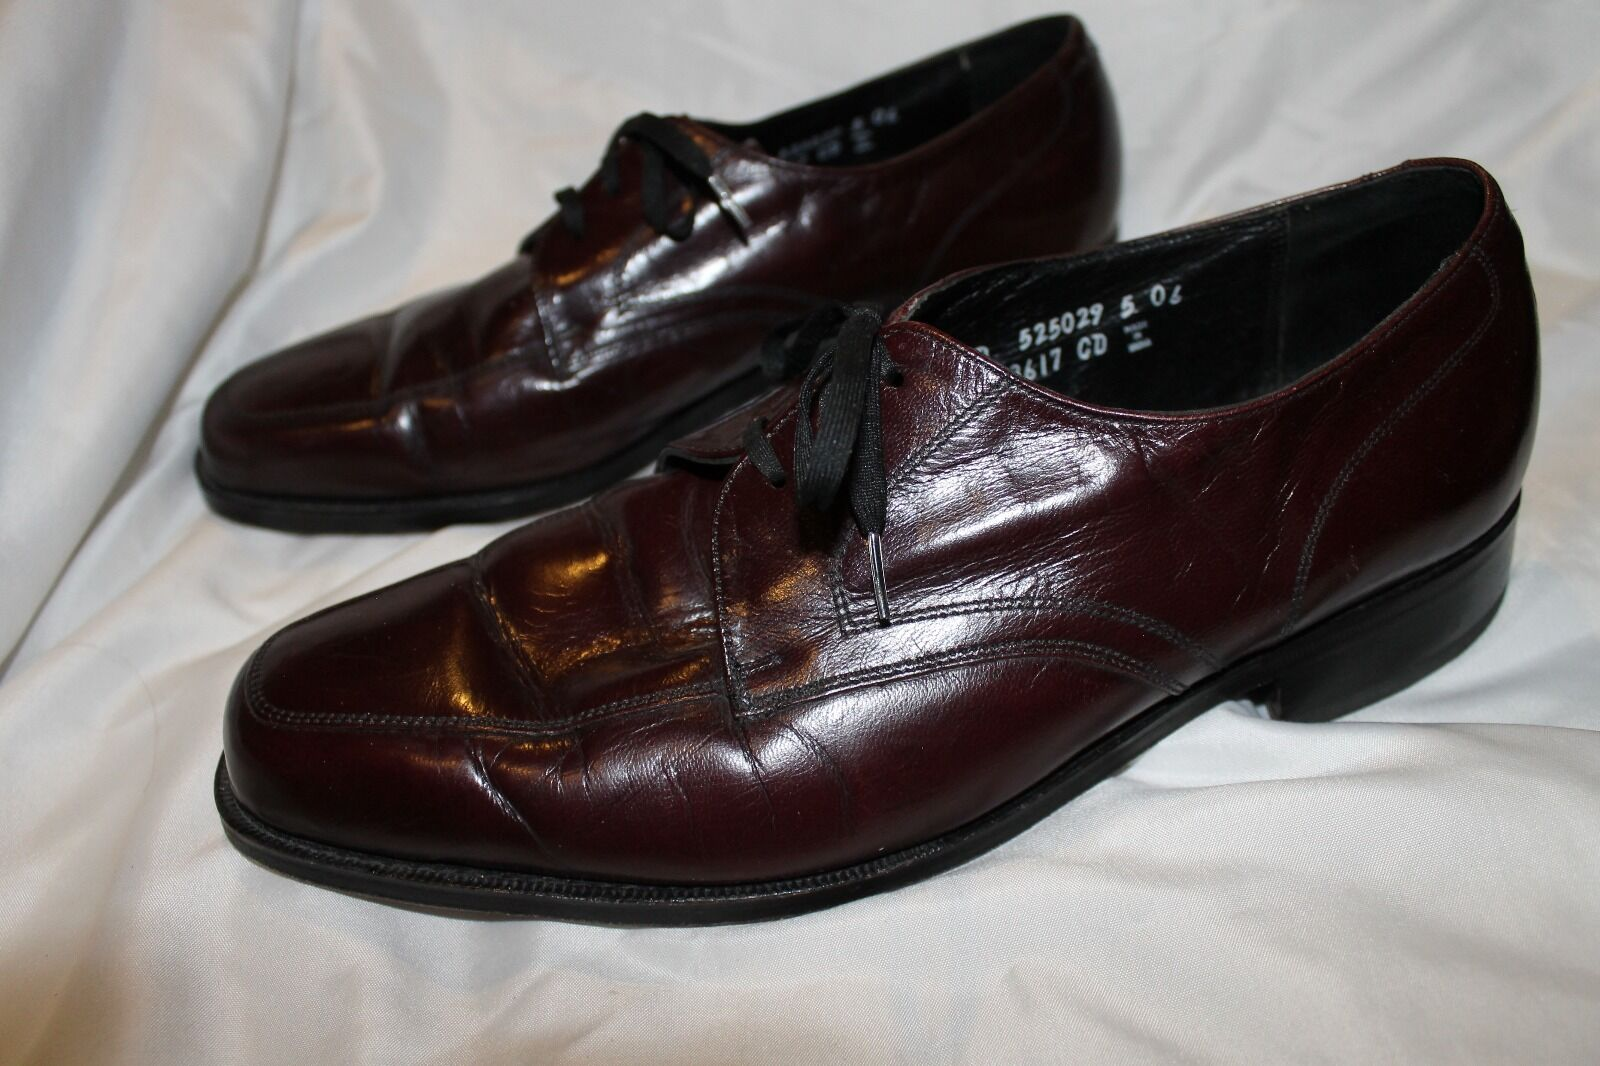 Florsheim Men's Leather Shoes Size 9 1/2 D Style 33617 Wine Brown